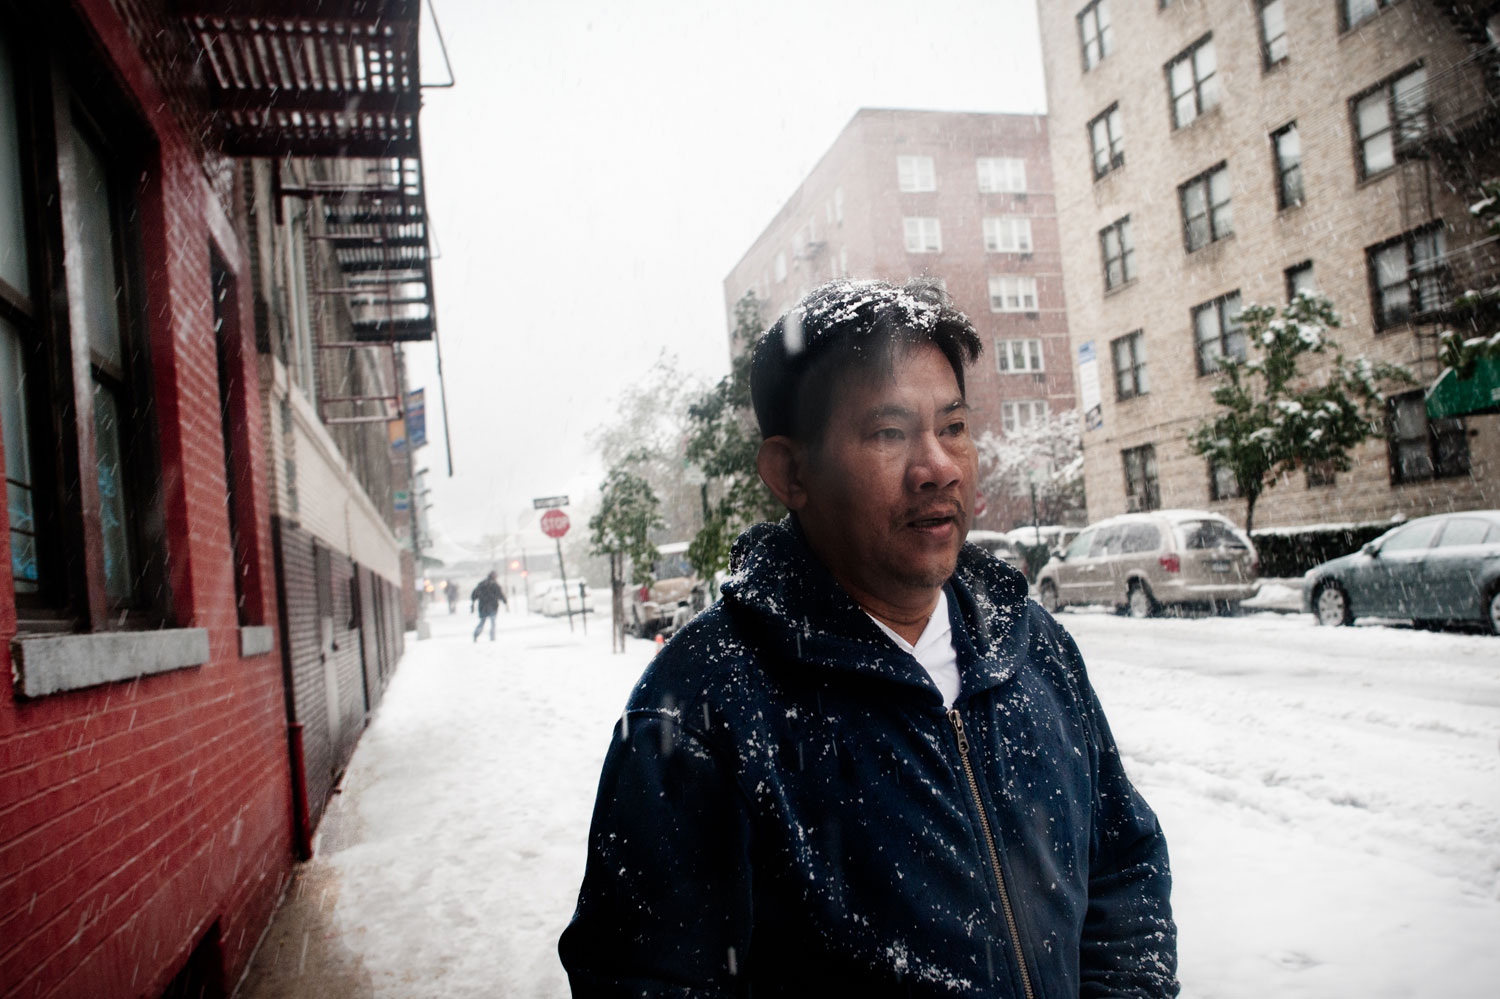 Bronx, New York City, October 2011.Veasna Ngin, 58, walks in front of his Bronx apartment during the first snow of the year. Ngin has lived in the same building with his family since his arrival from a refugee camp in 1981. He assisted in the resettlement of Cambodian orphans as a social worker.